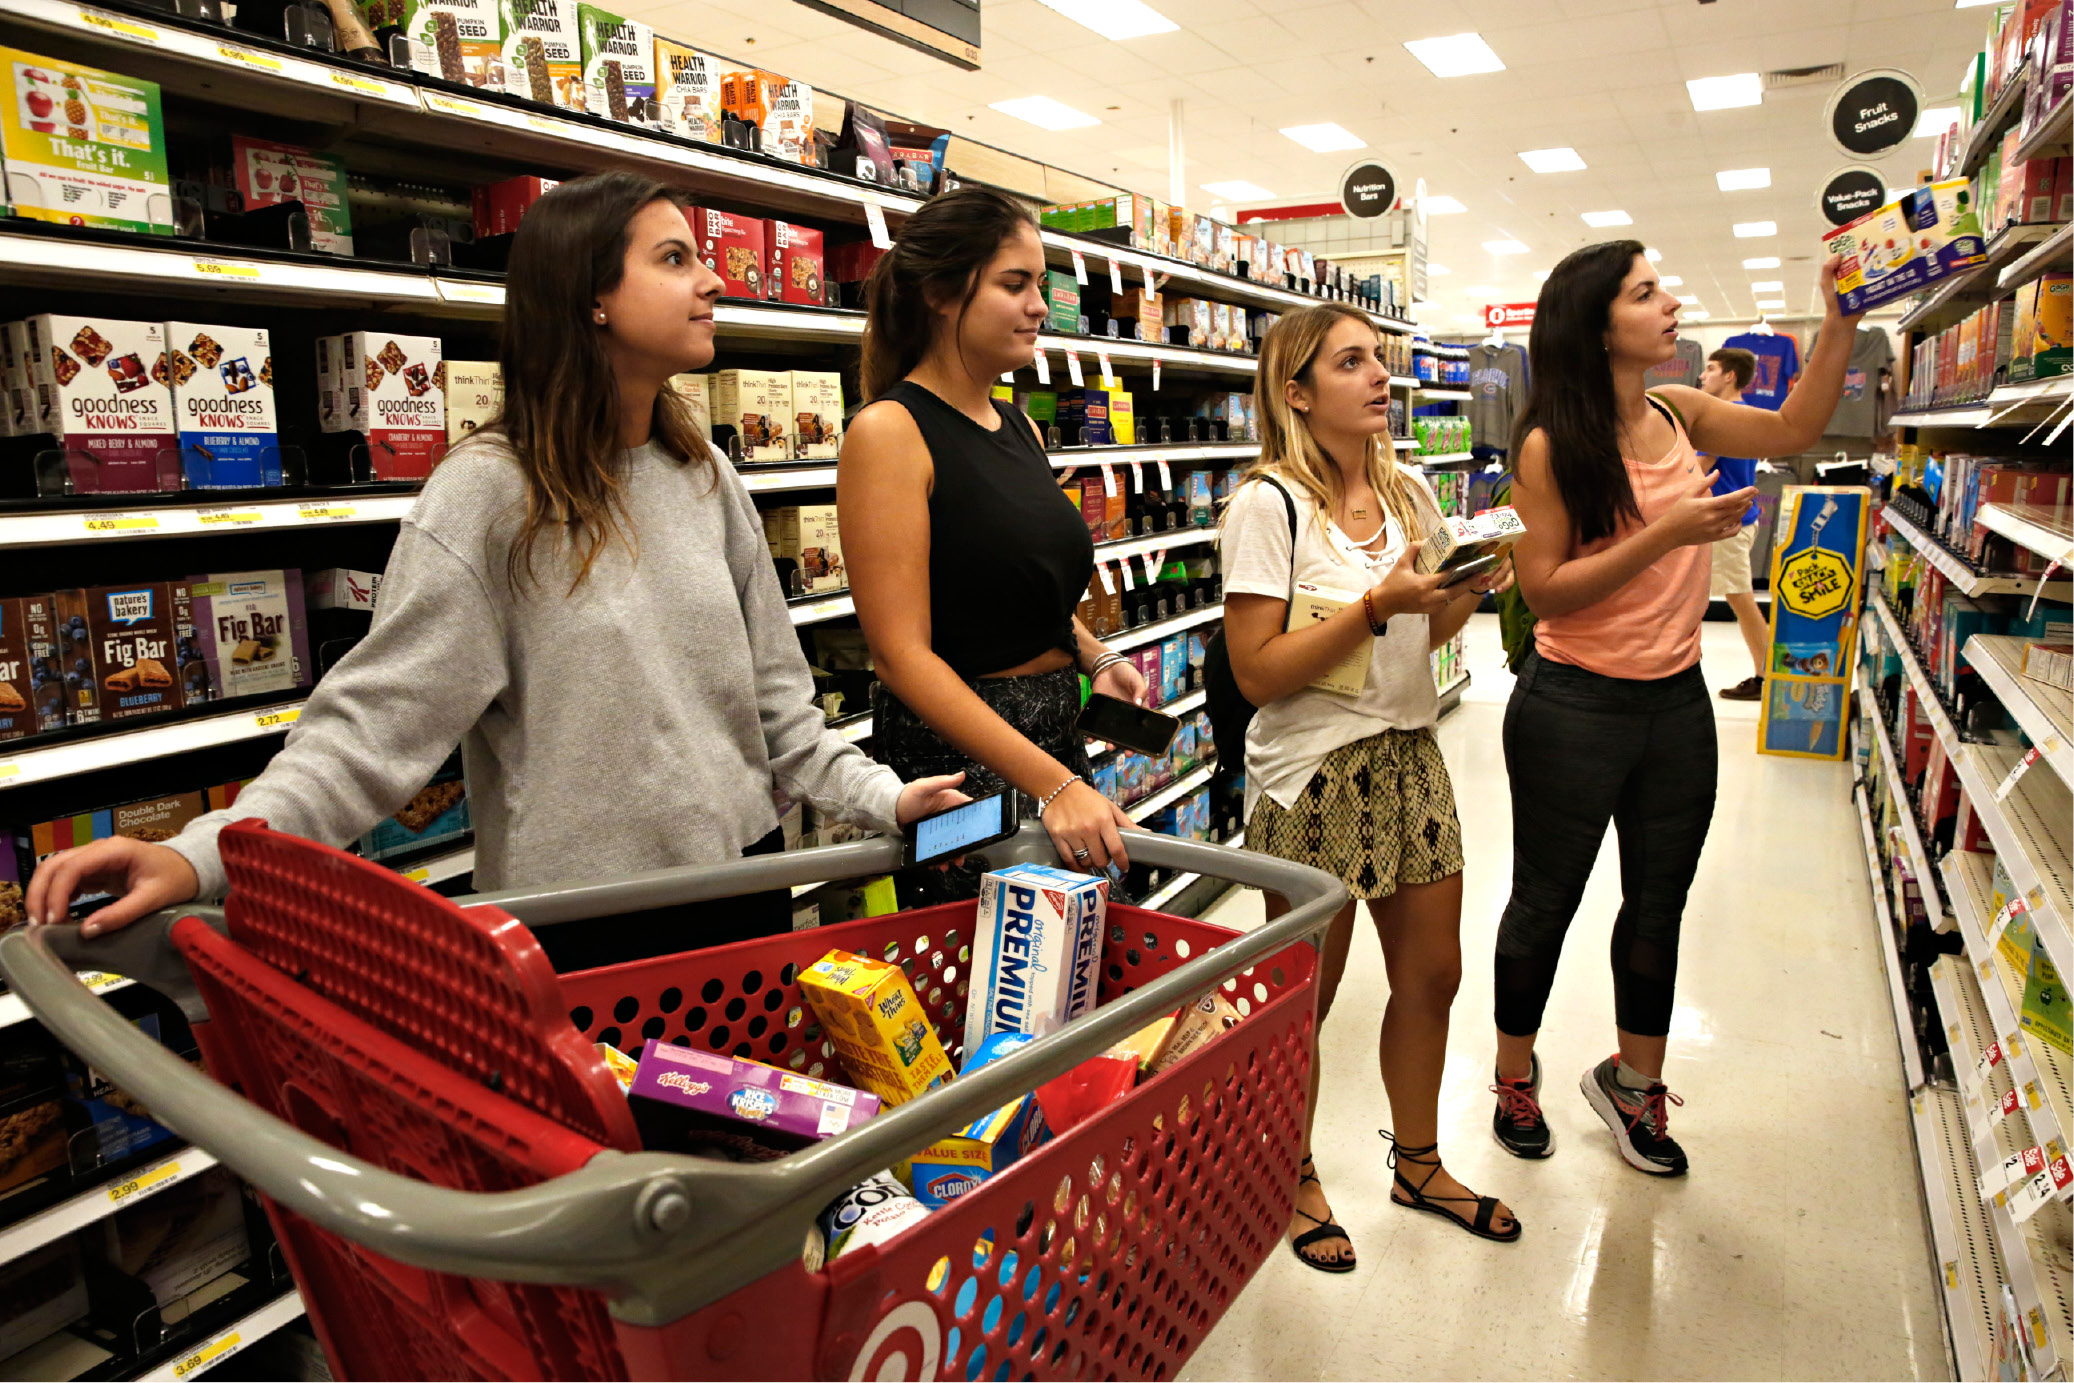 From left, Denise Cabrera, Veronica Vicente, Alejandra Sanchez and Carolina Rodriguez,  prep for hurricane Irma and shop for non-perishable food  in Gainesville, Fla., Sept. 5, 2017.  Irma roared into the Caribbean with record force early Wednesday, its 185-mph winds shaking homes and flooding buildings on a chain of small islands along a path toward Puerto Rico, Cuba and Hispaniola and a possible direct hit on densely populated South Florida.   (Andrea Cornejo/The Gainesville Sun via AP)